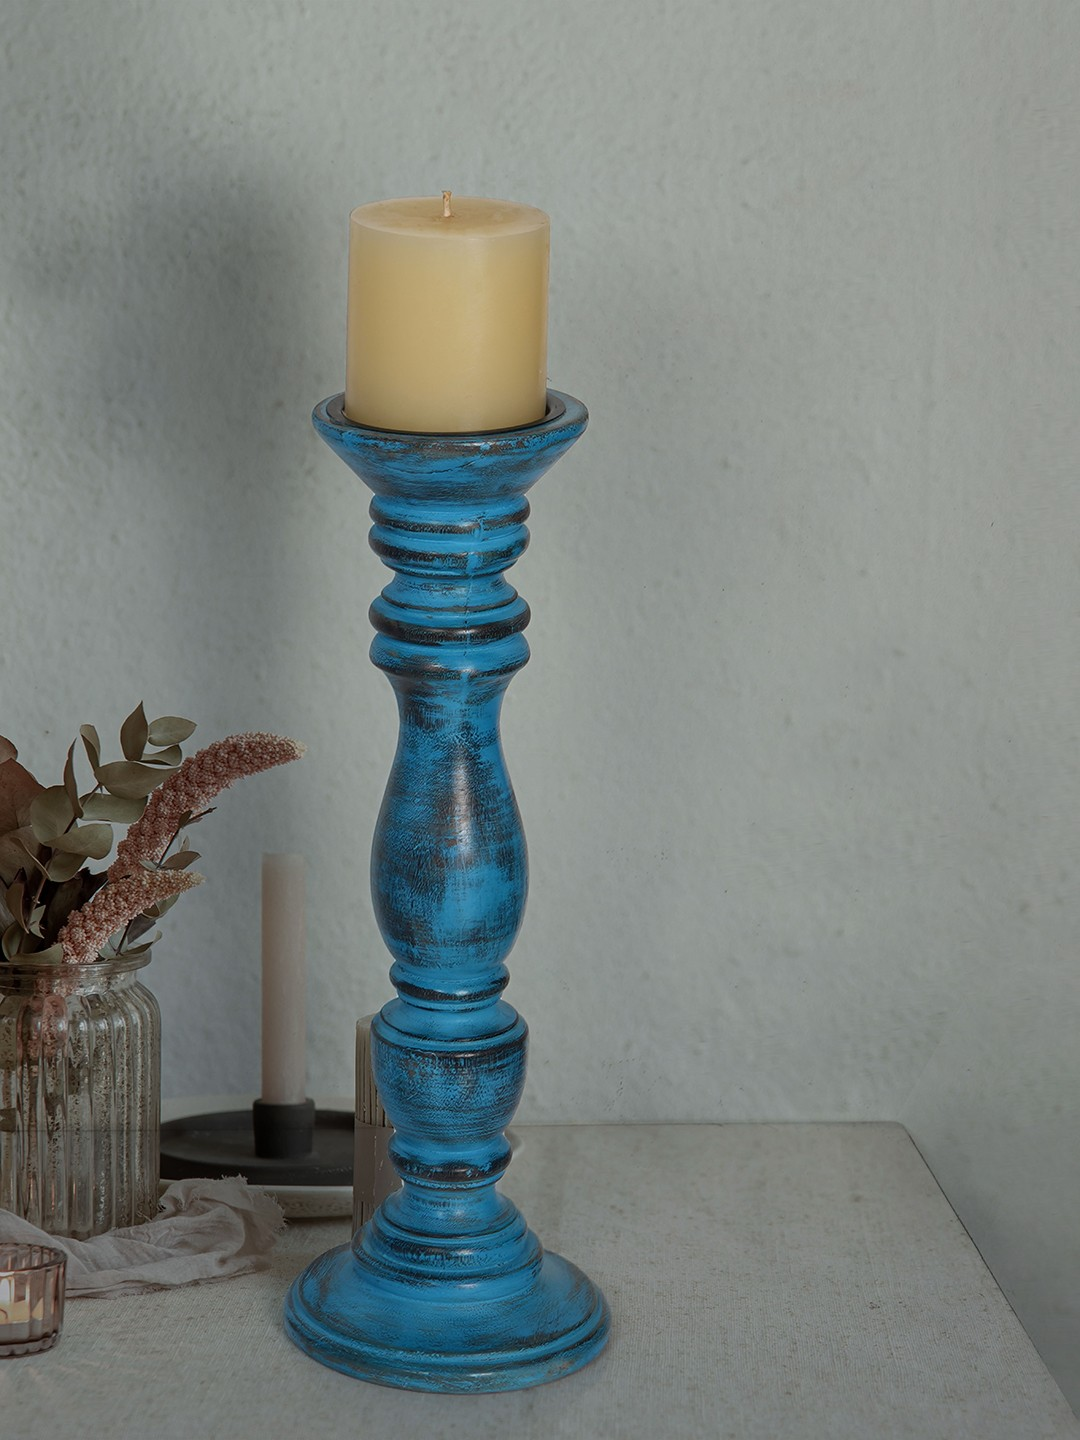 Rustic Blue 15 Inches Wooden Pillar Candle Stand (without candle)